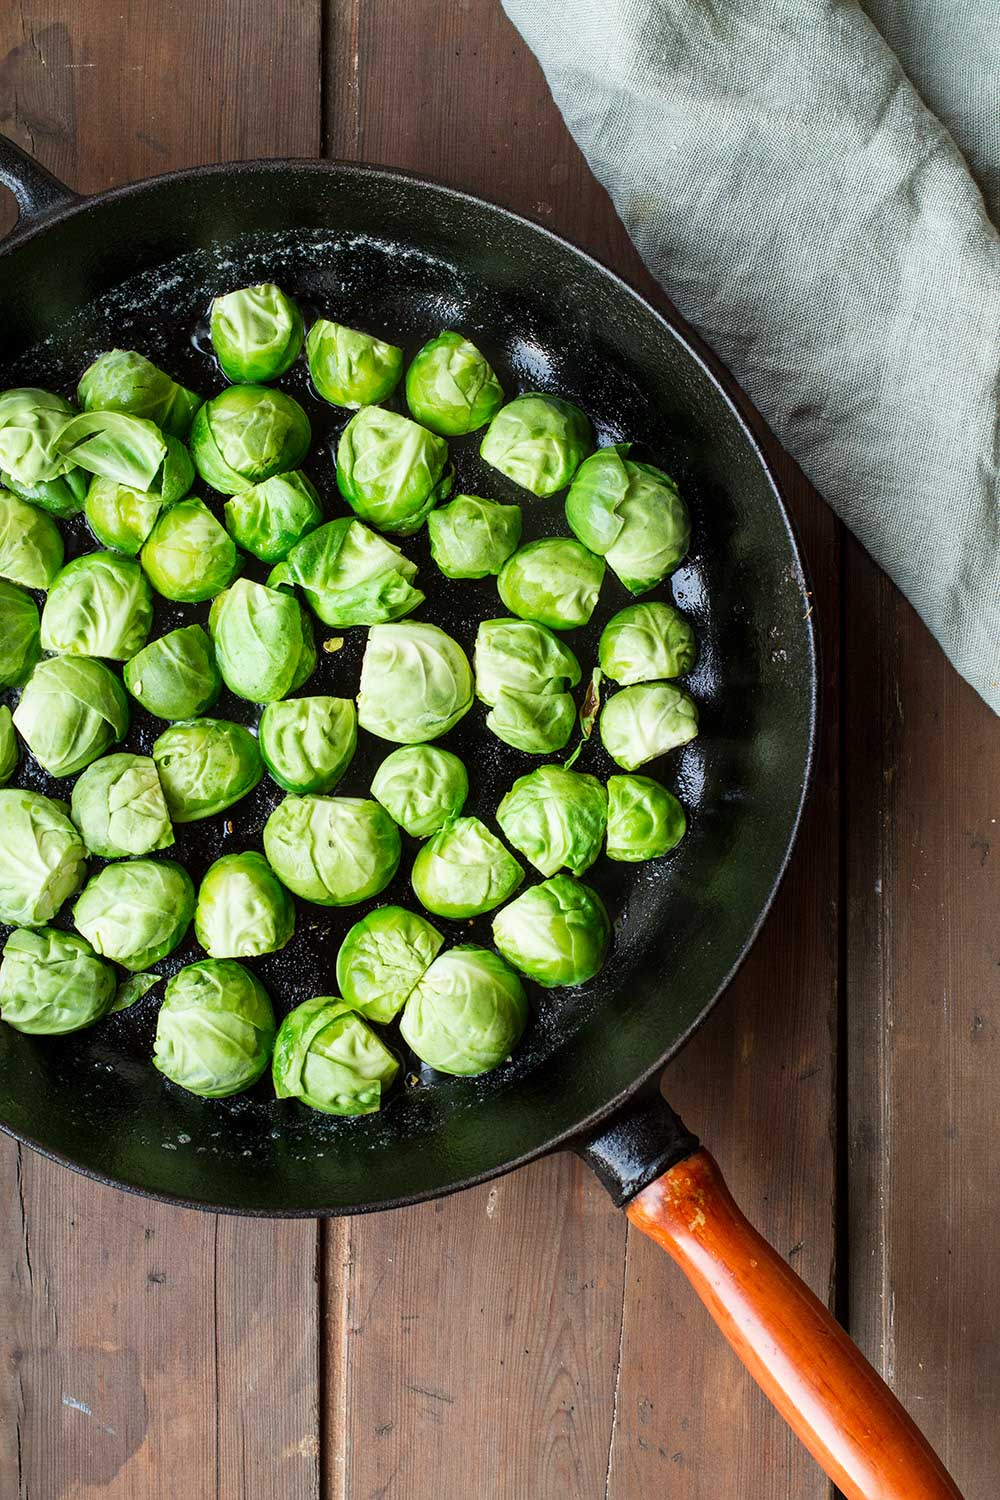 Brussels sprouts with cut side down in a cast iron skillet.